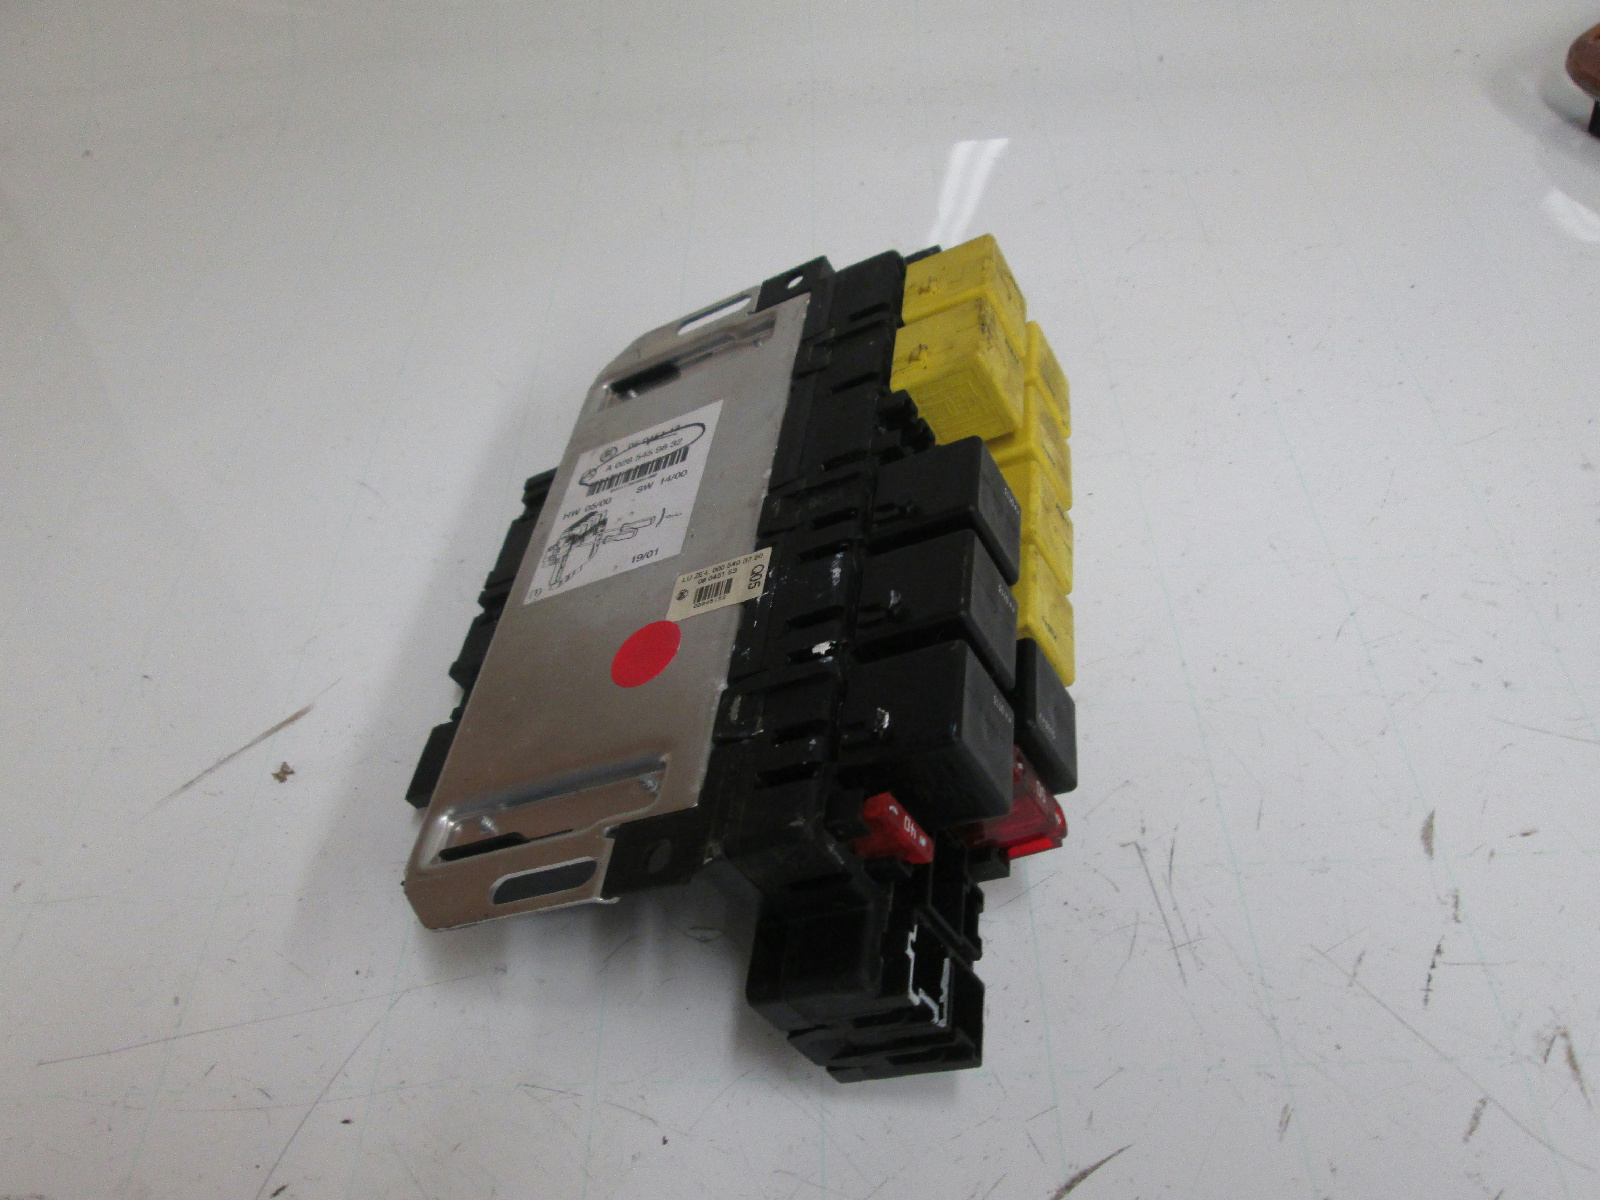 00 02 mercedes w220 s430 s500 sam fuse relay panel 0285459832 used allums import